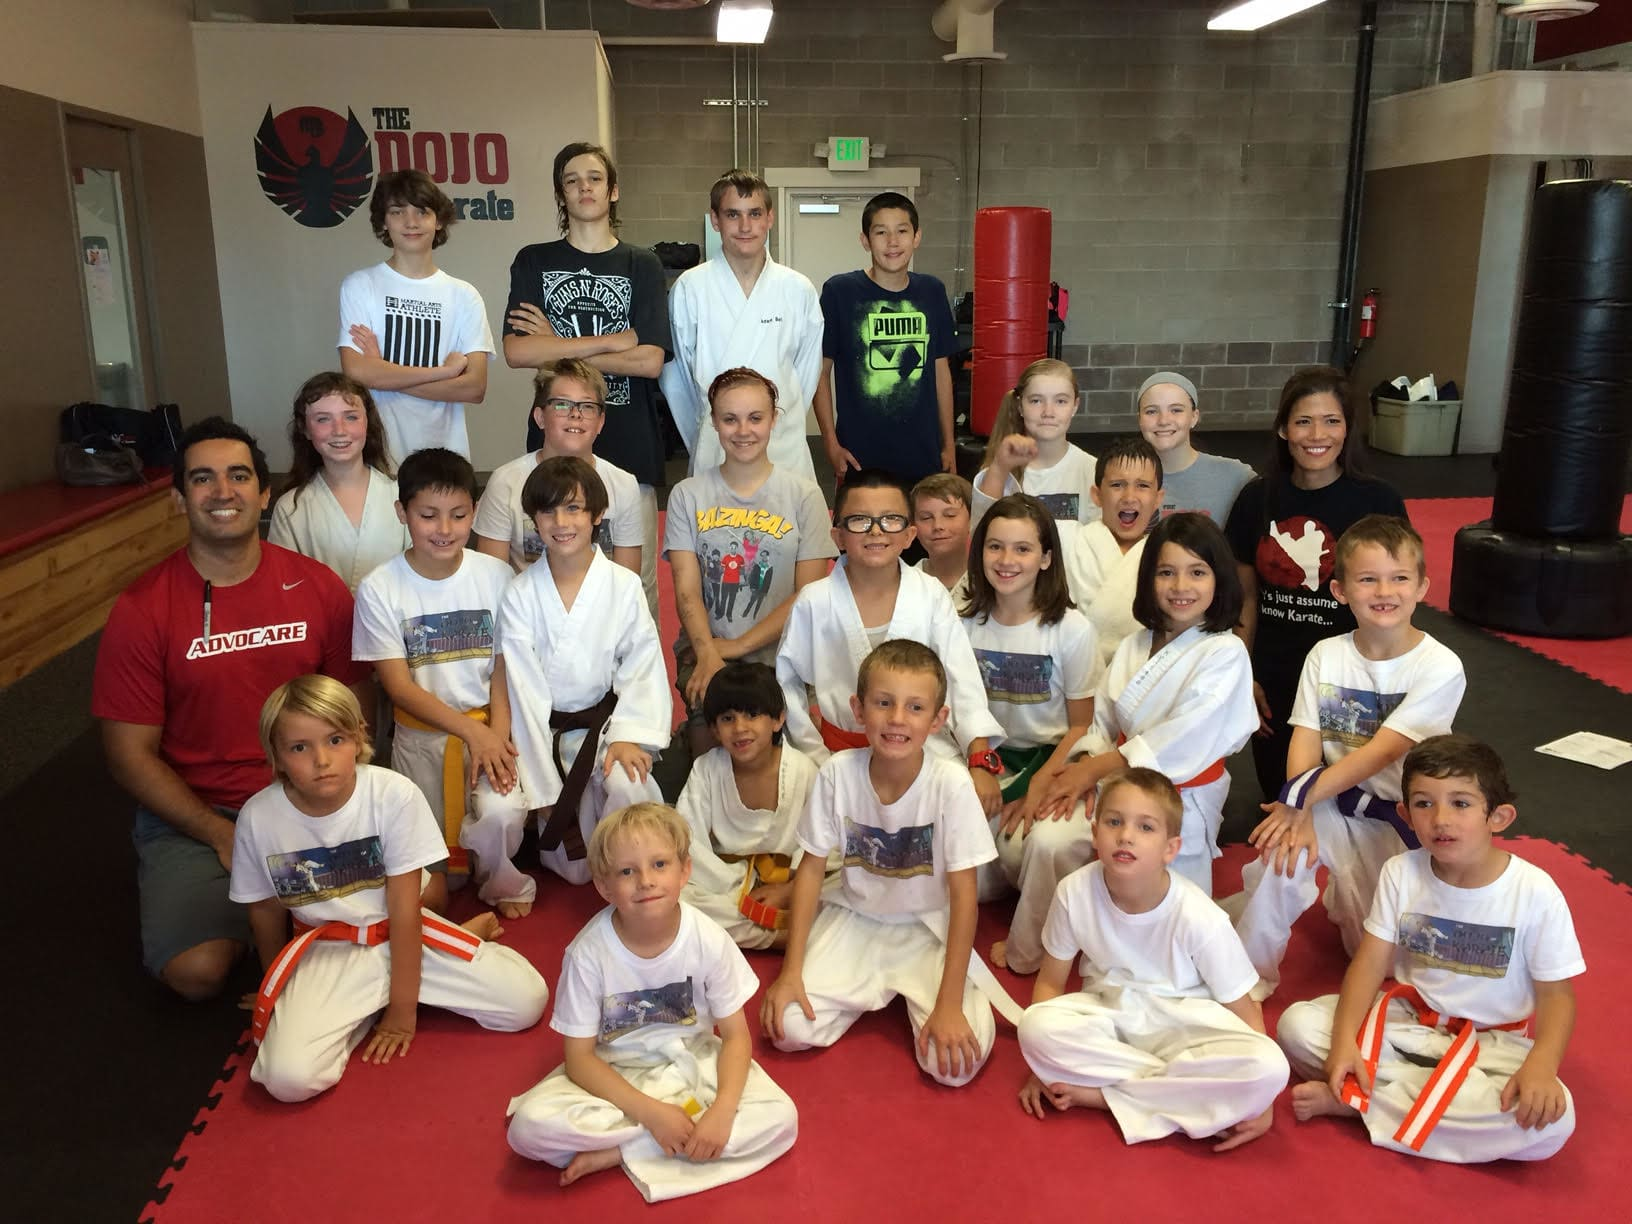 "Teaching Excellence Through Karate. <br />Sign Up Today For Our <a href=""http://thedojoofkarate.com/Home/Offer/4954""><strong>Back-2-School Special</strong></a>!"